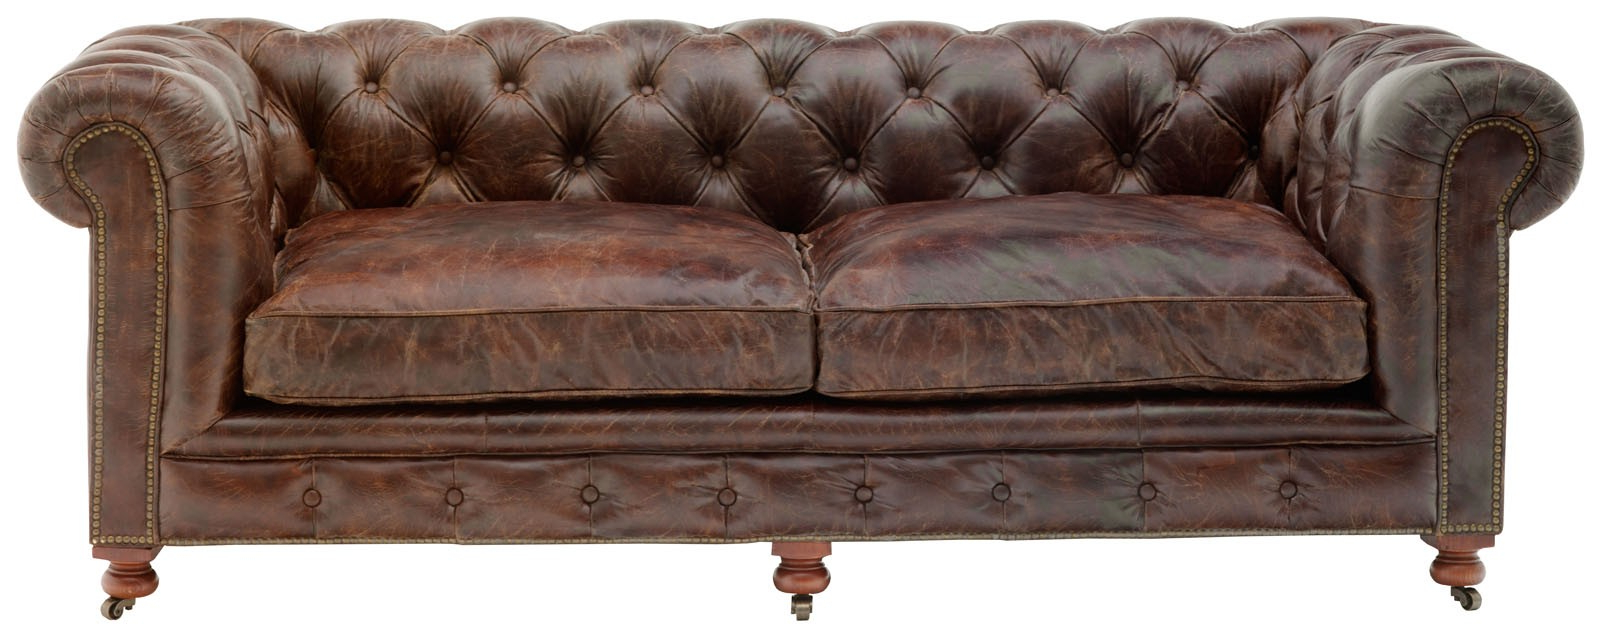 Most Recent Great Leather Sofa Chair 71 In Sofas And Couches Ideas With Leather Inside Andrew Leather Sofa Chairs (Gallery 1 of 20)